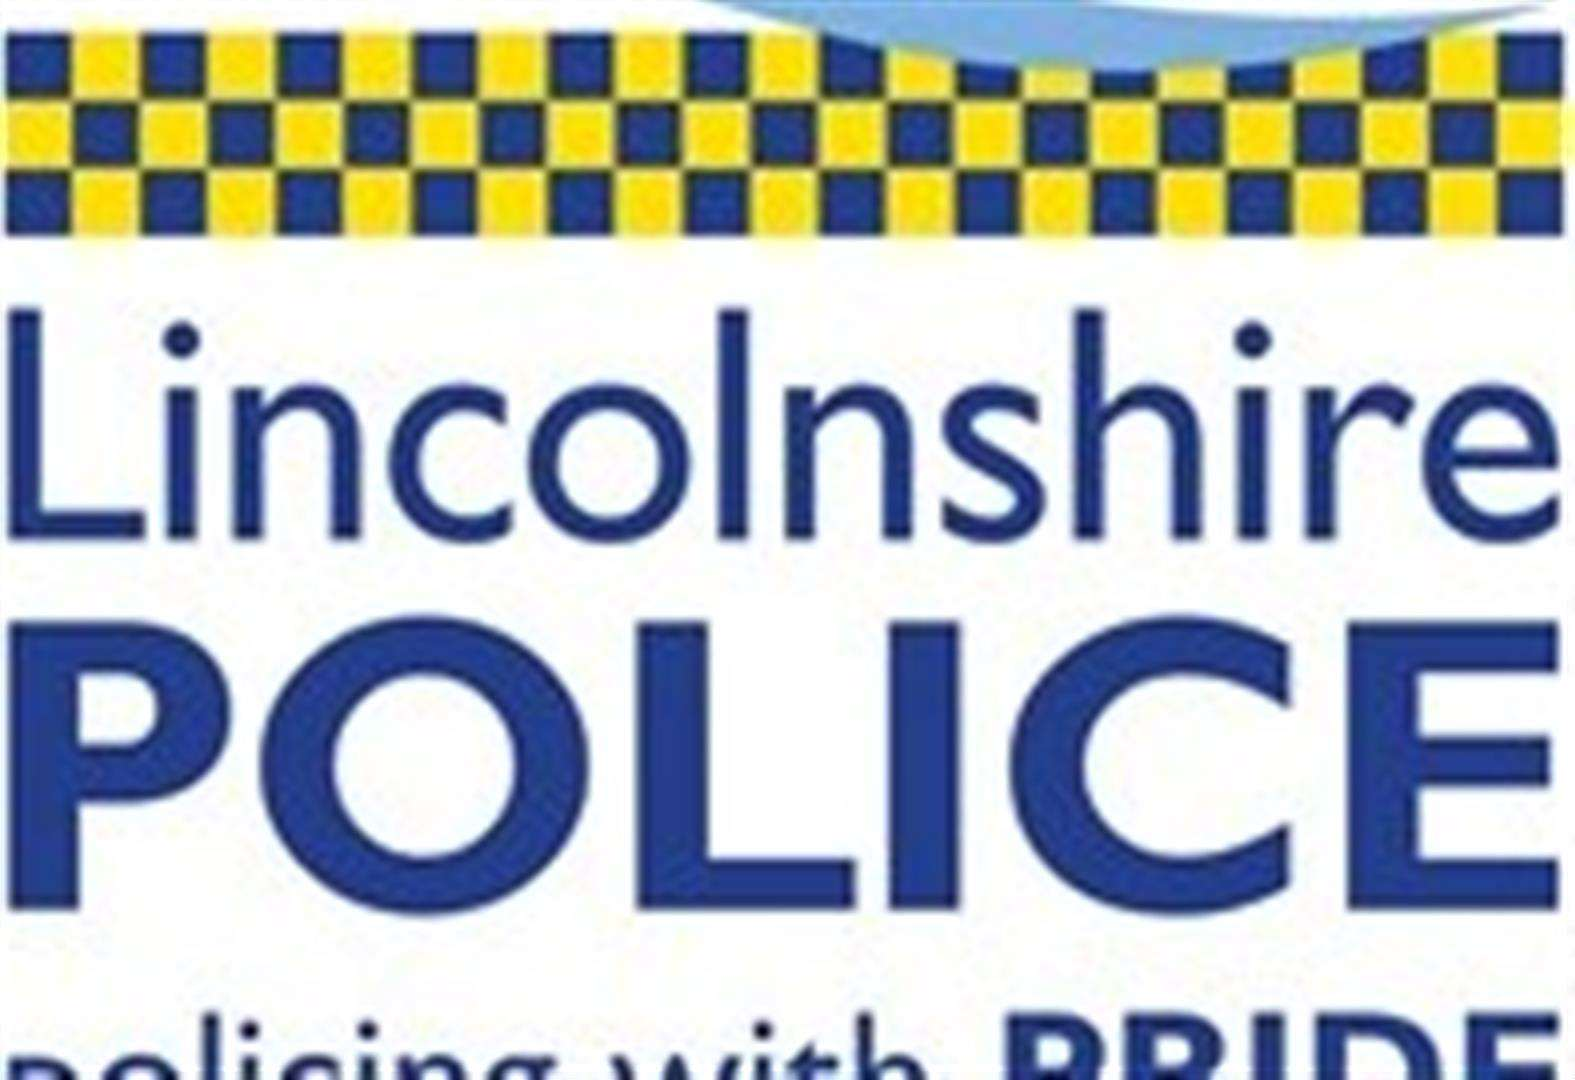 Lincolnshire Police officers are under investigation by the IOPC.